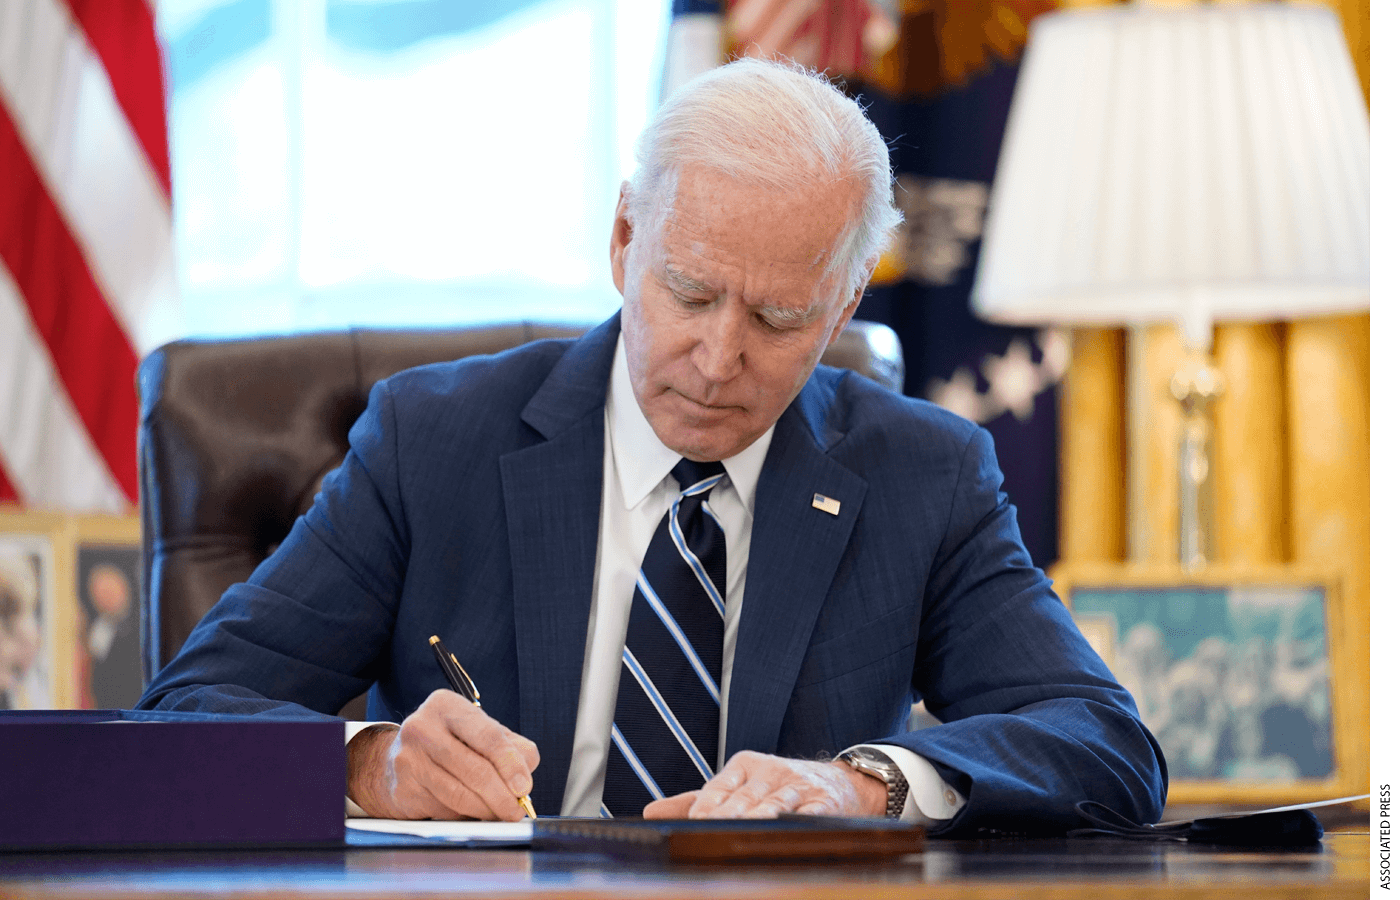 President Joe Biden signs the American Rescue Plan, a coronavirus relief package, in the Oval Office of the White House, Thursday, March 11, 2021.